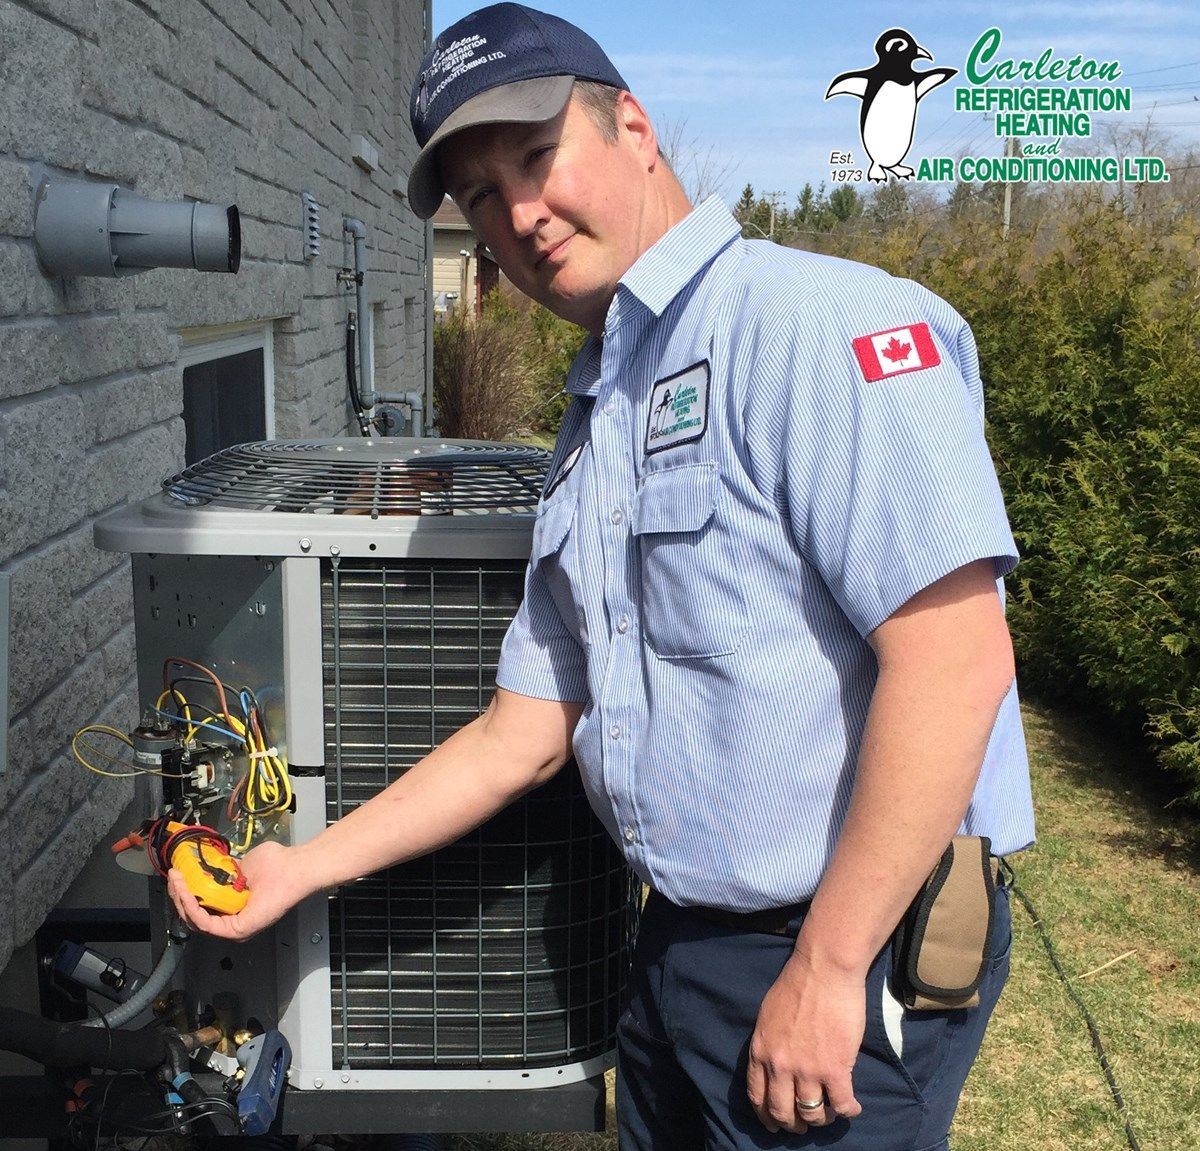 Win 250 from Carleton Refrigeration Heating & Air